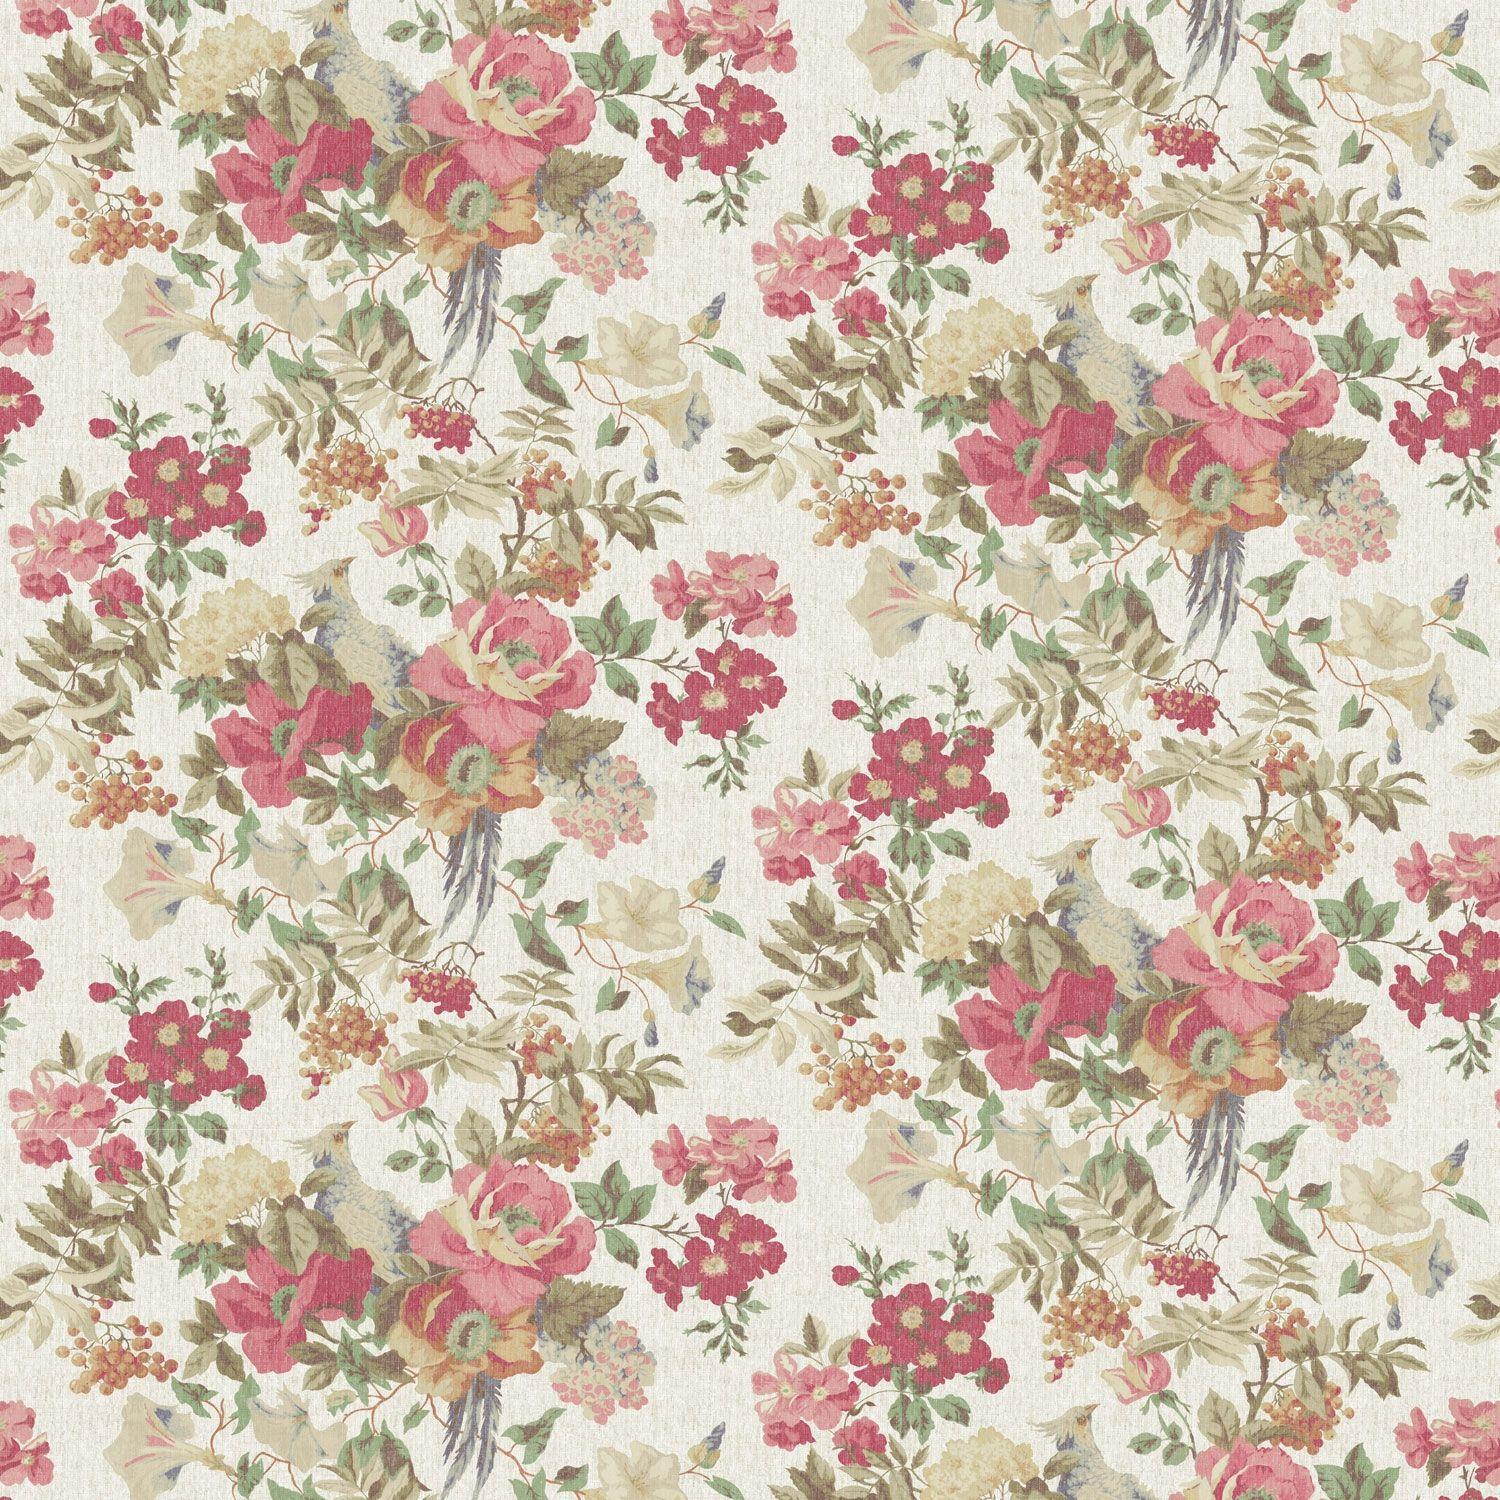 Vintage Flower Backgrounds Tumblr Wallpaper Cave